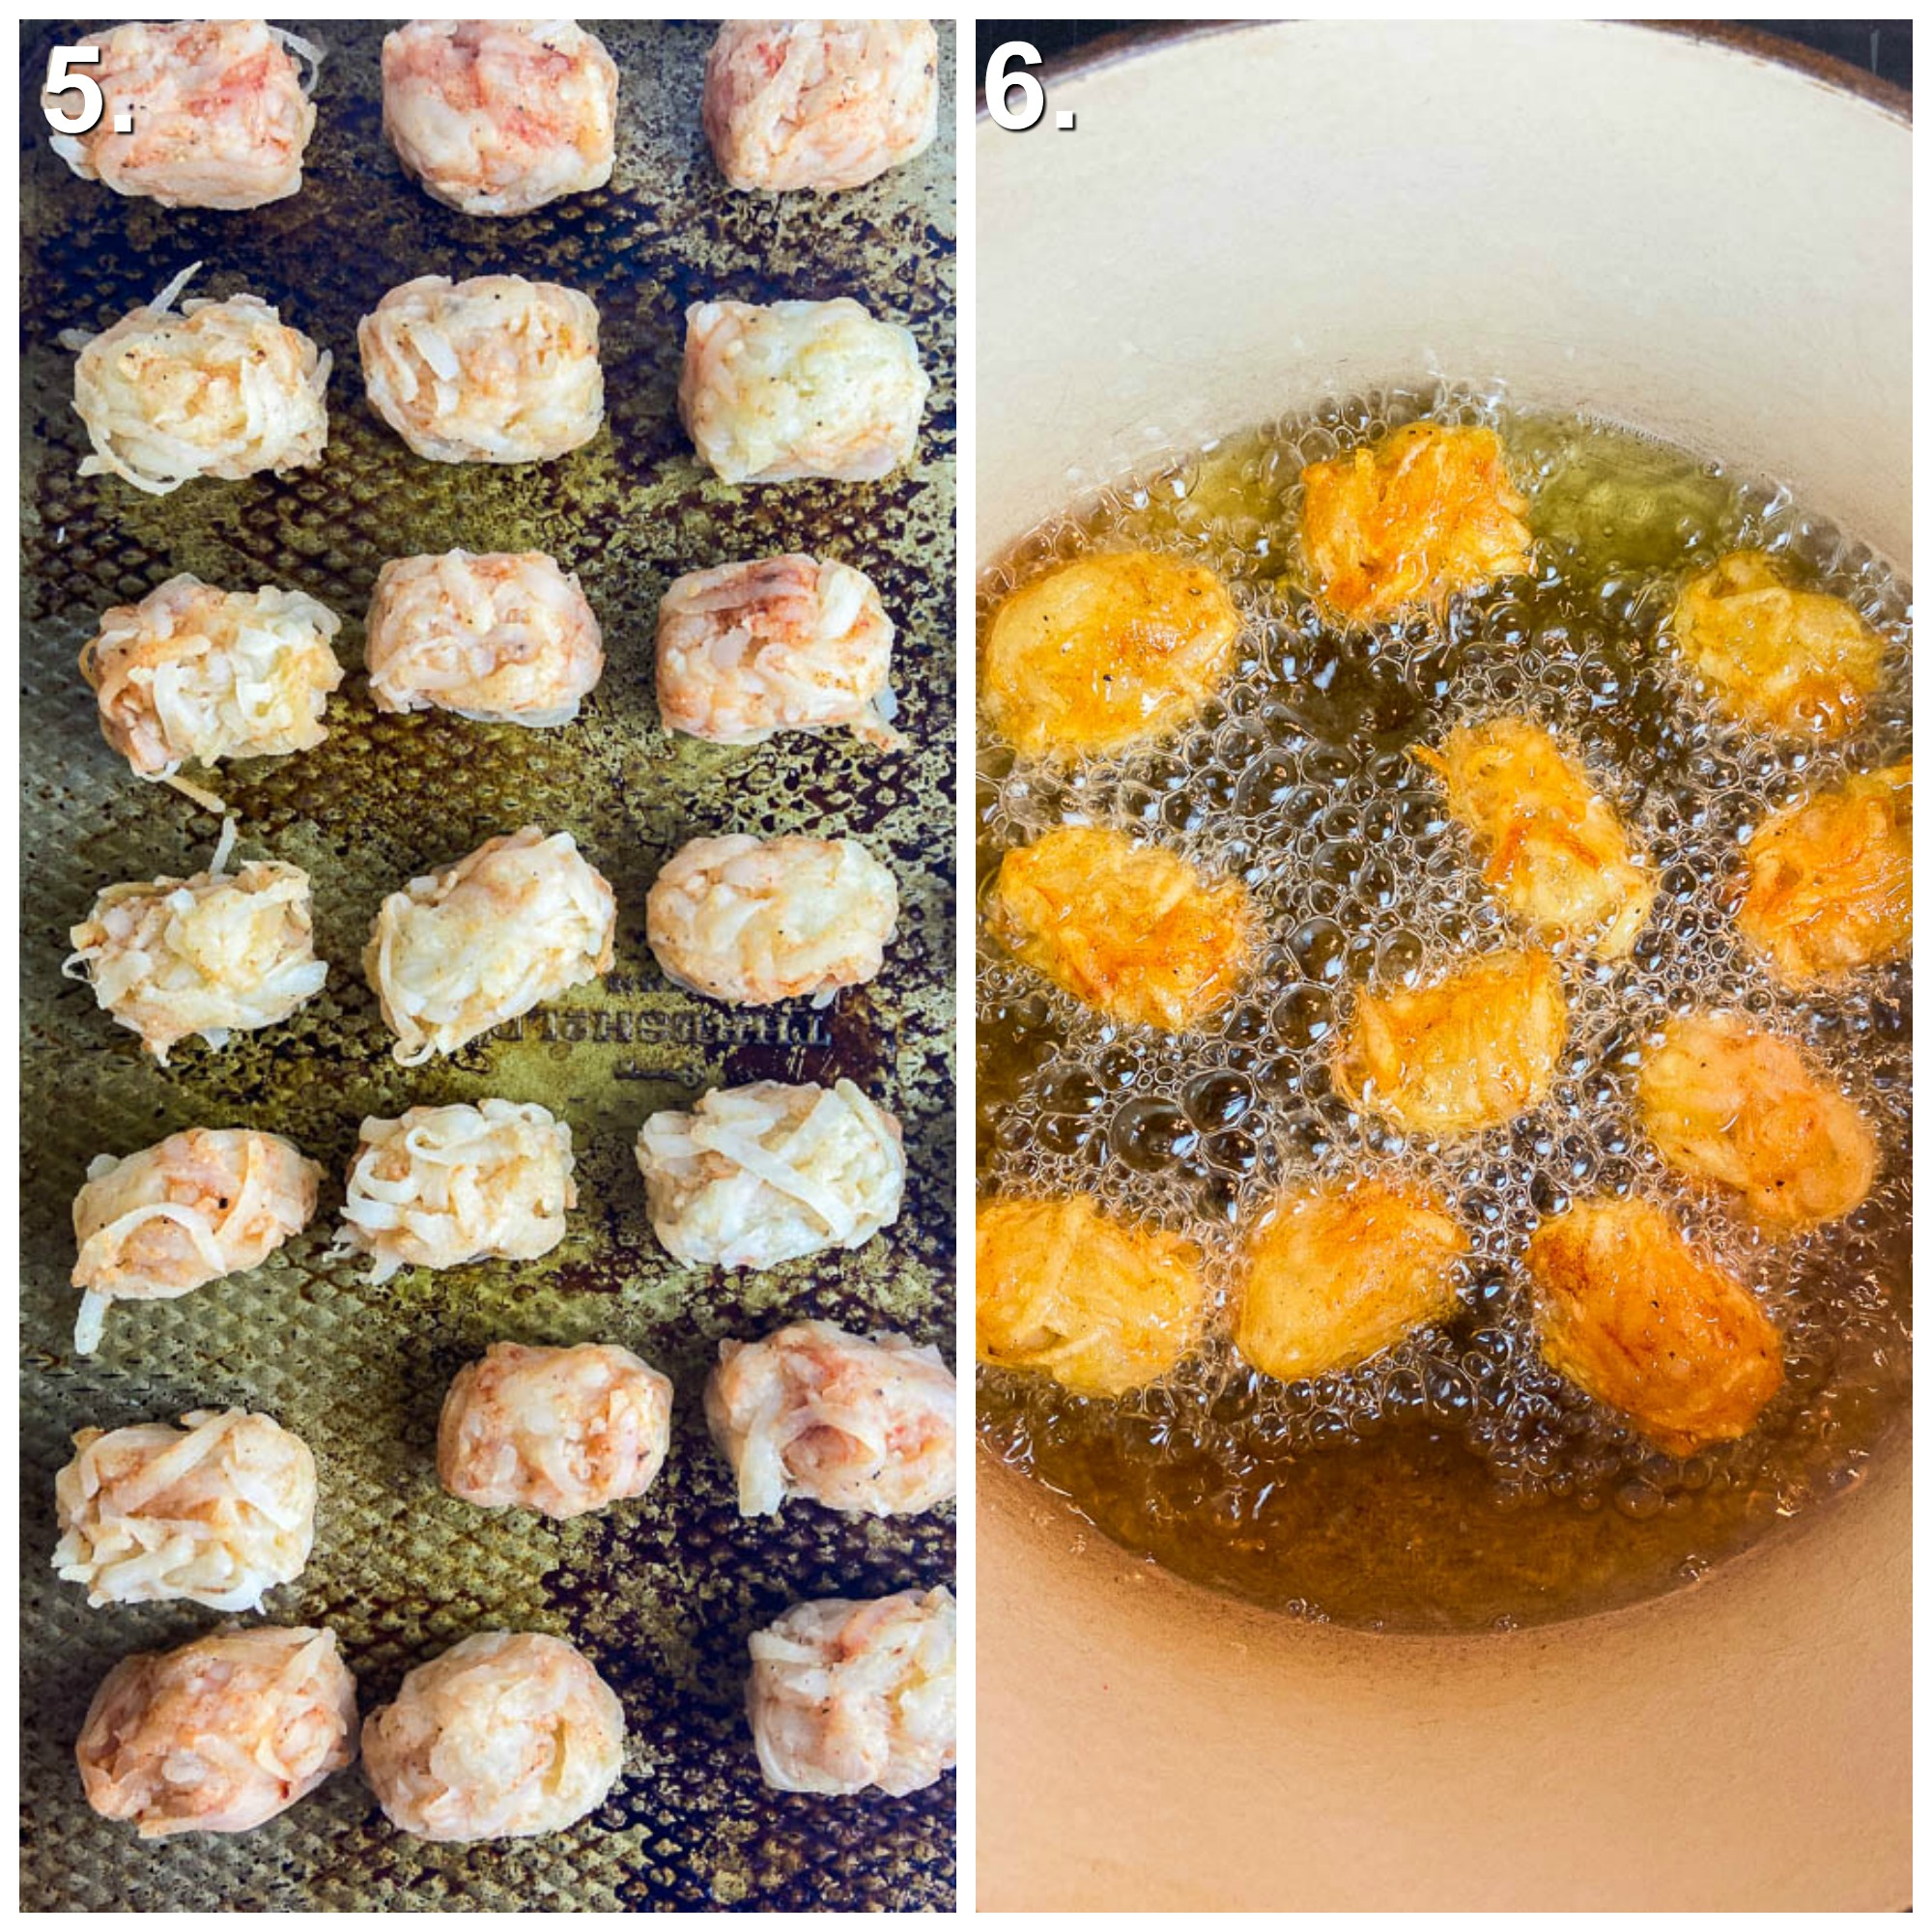 Collage of 2 photos. Tater tots on baking sheet and tater tots frying in a pot.